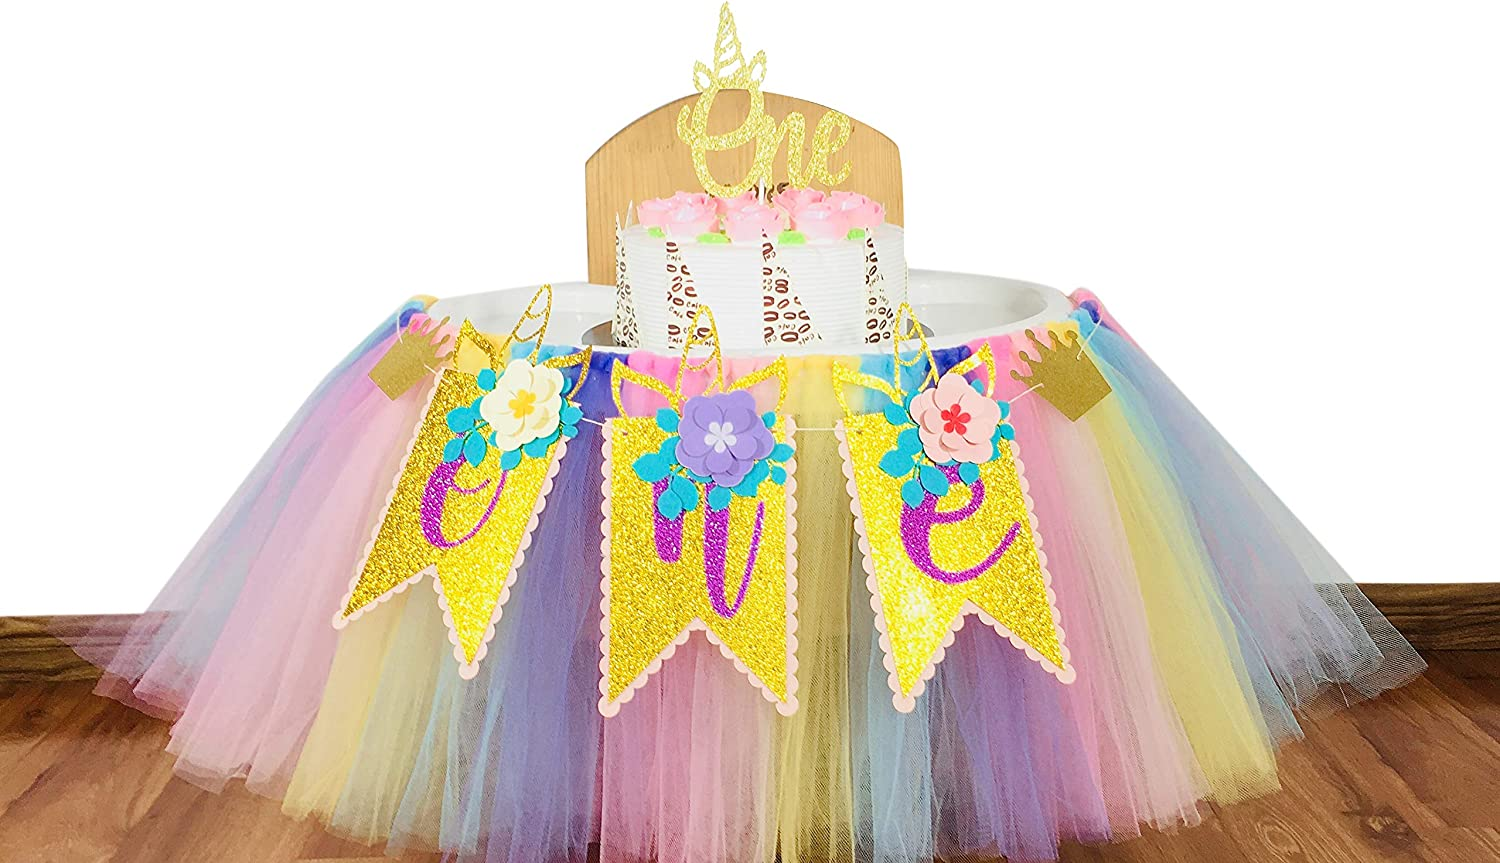 E&L 1st Birthday Girl 3 in 1 High Chair Decorations Set, Unicorn Themed High Chair Tutu, & One Flower Themed Pennant & One Cake Topper, Birthday Party Supplies, One Unicorn Themed Party Decorations